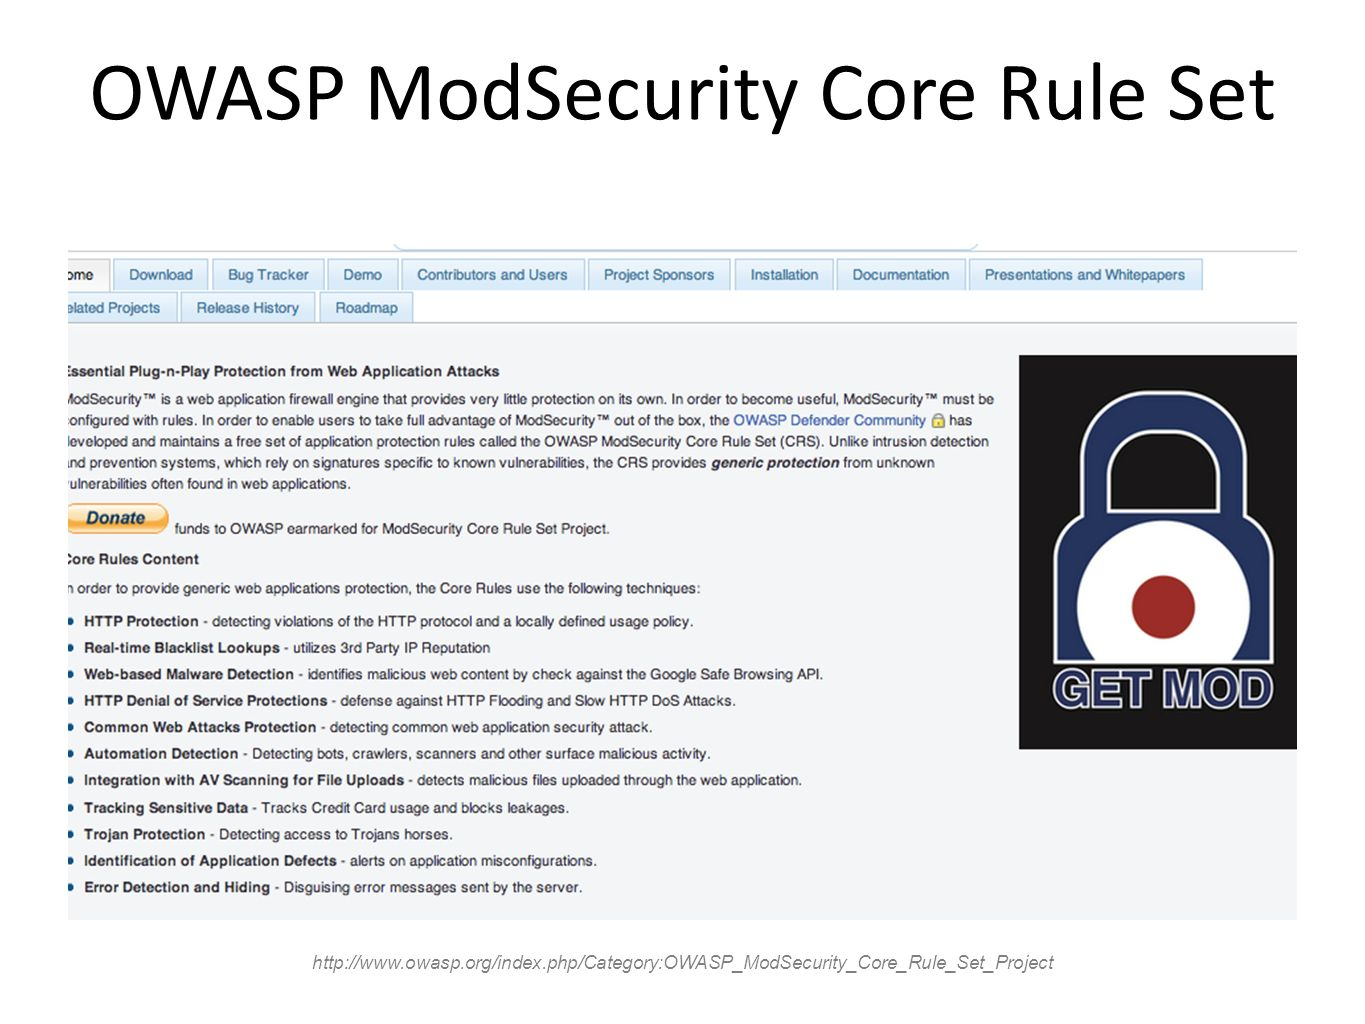 OWASP ModSecurity Core Rule Set http://www.owasp.org/index.php/Category:OWASP_ModSecurity_Core_Rule_Set_Project